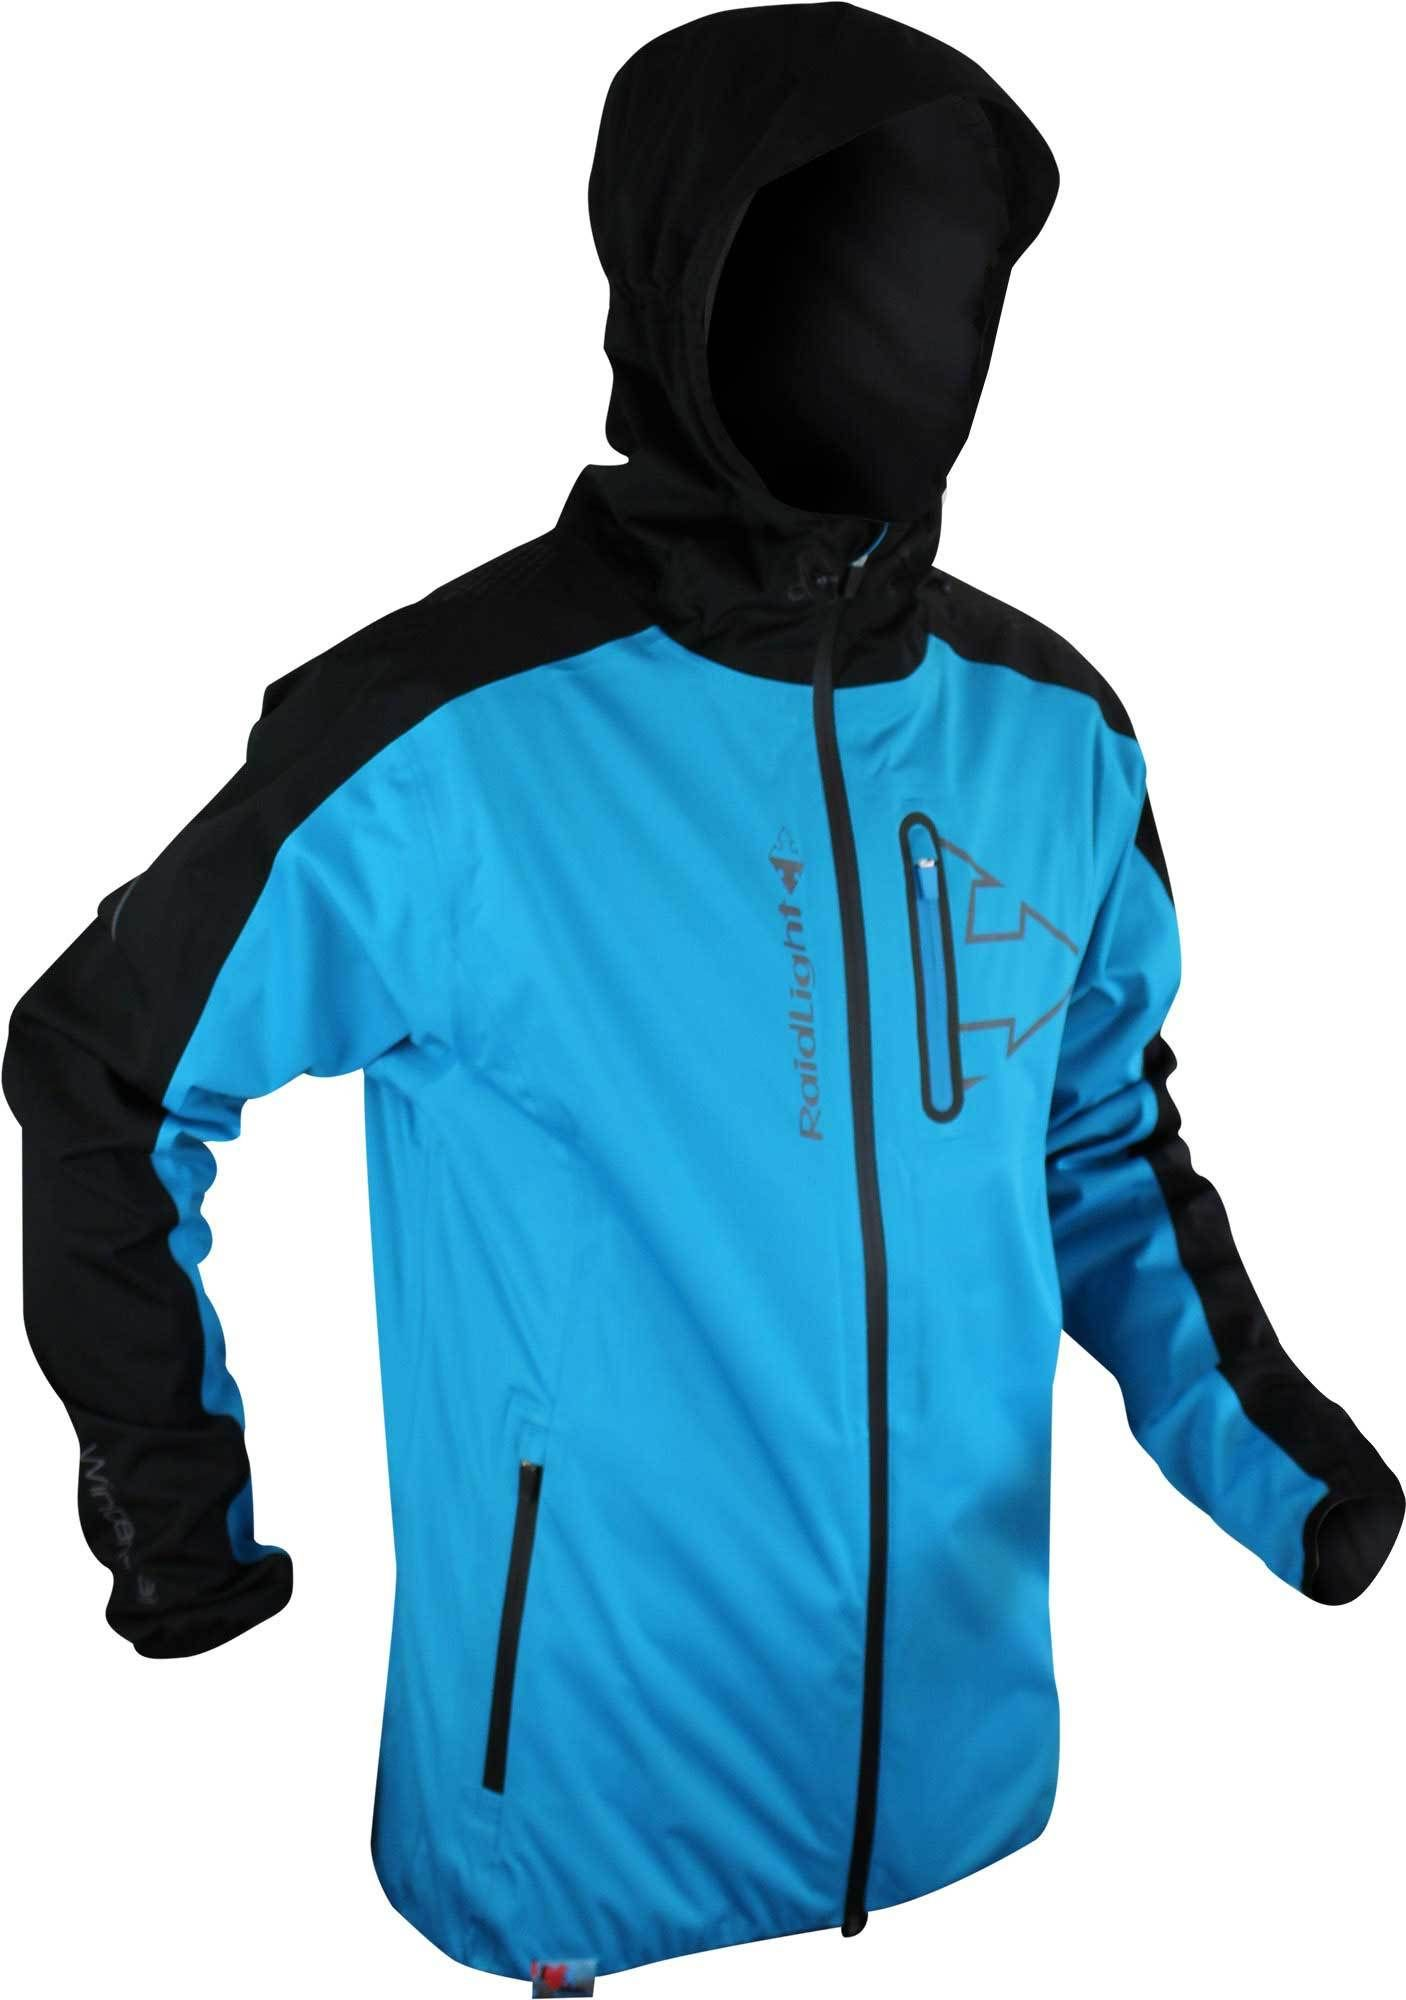 GIACCA RAIDLIGHT RAIDSHELL EVO JACKET GLGMJ12 BLUE BLACK.jpg